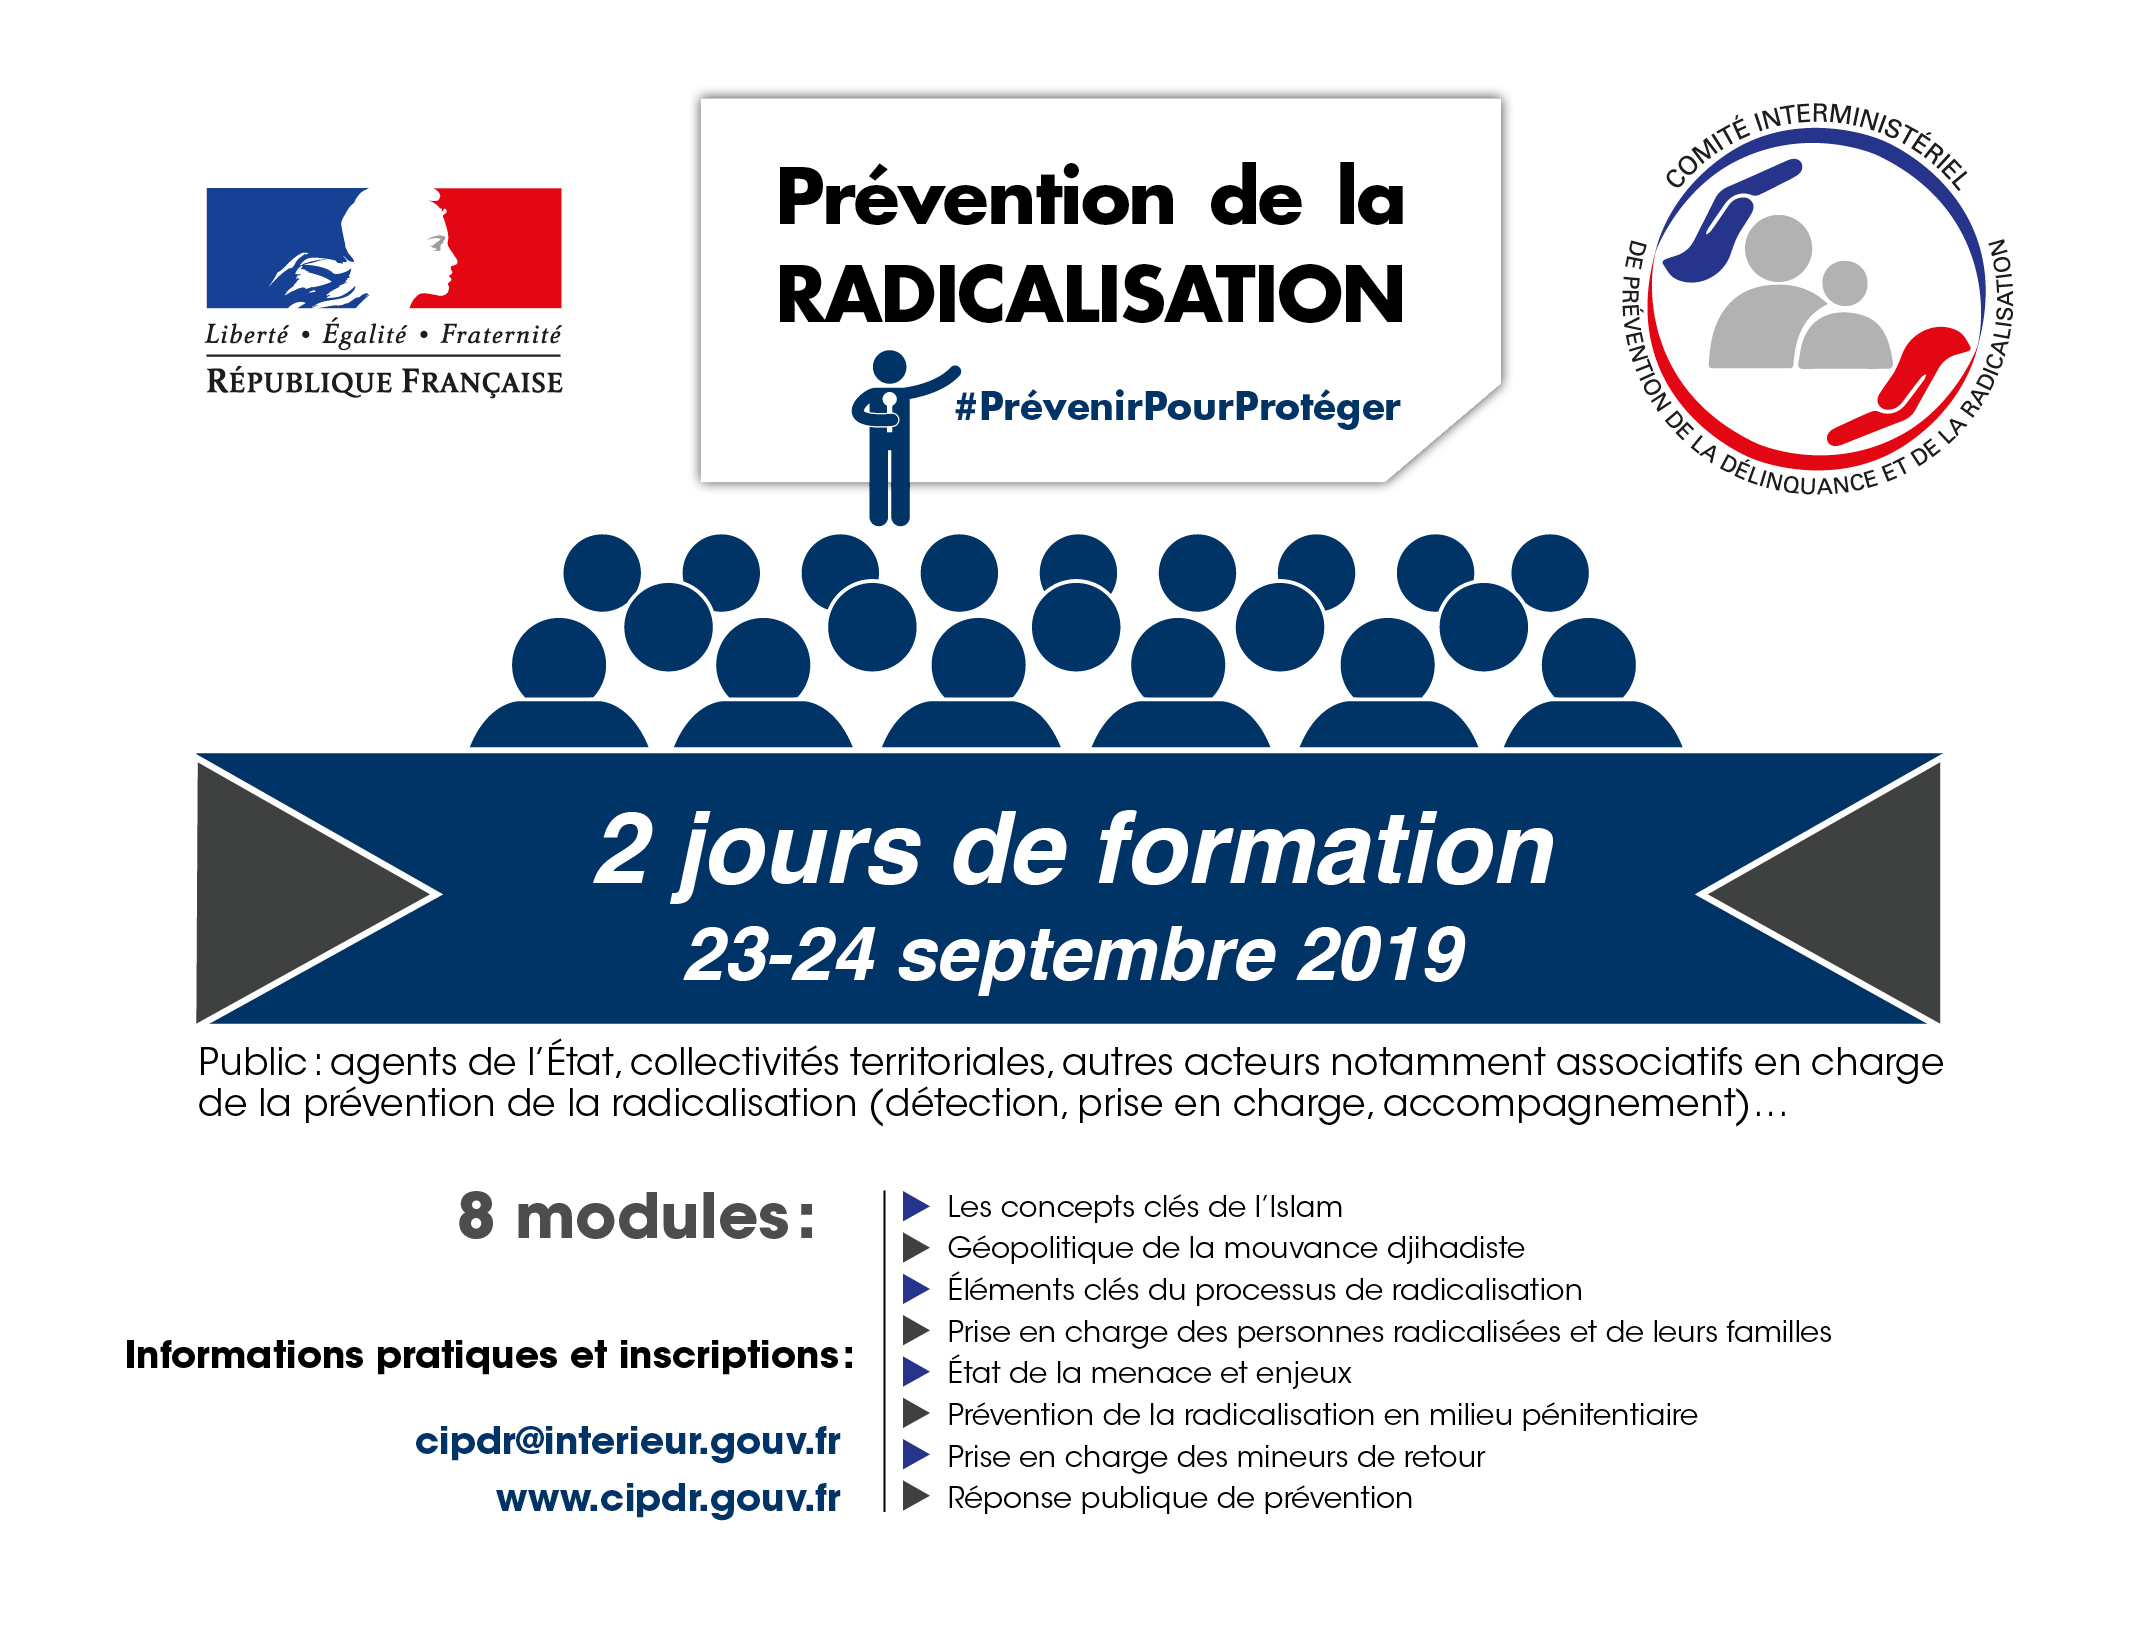 23/24 Septembre :  session de formation de la rentrée 2019